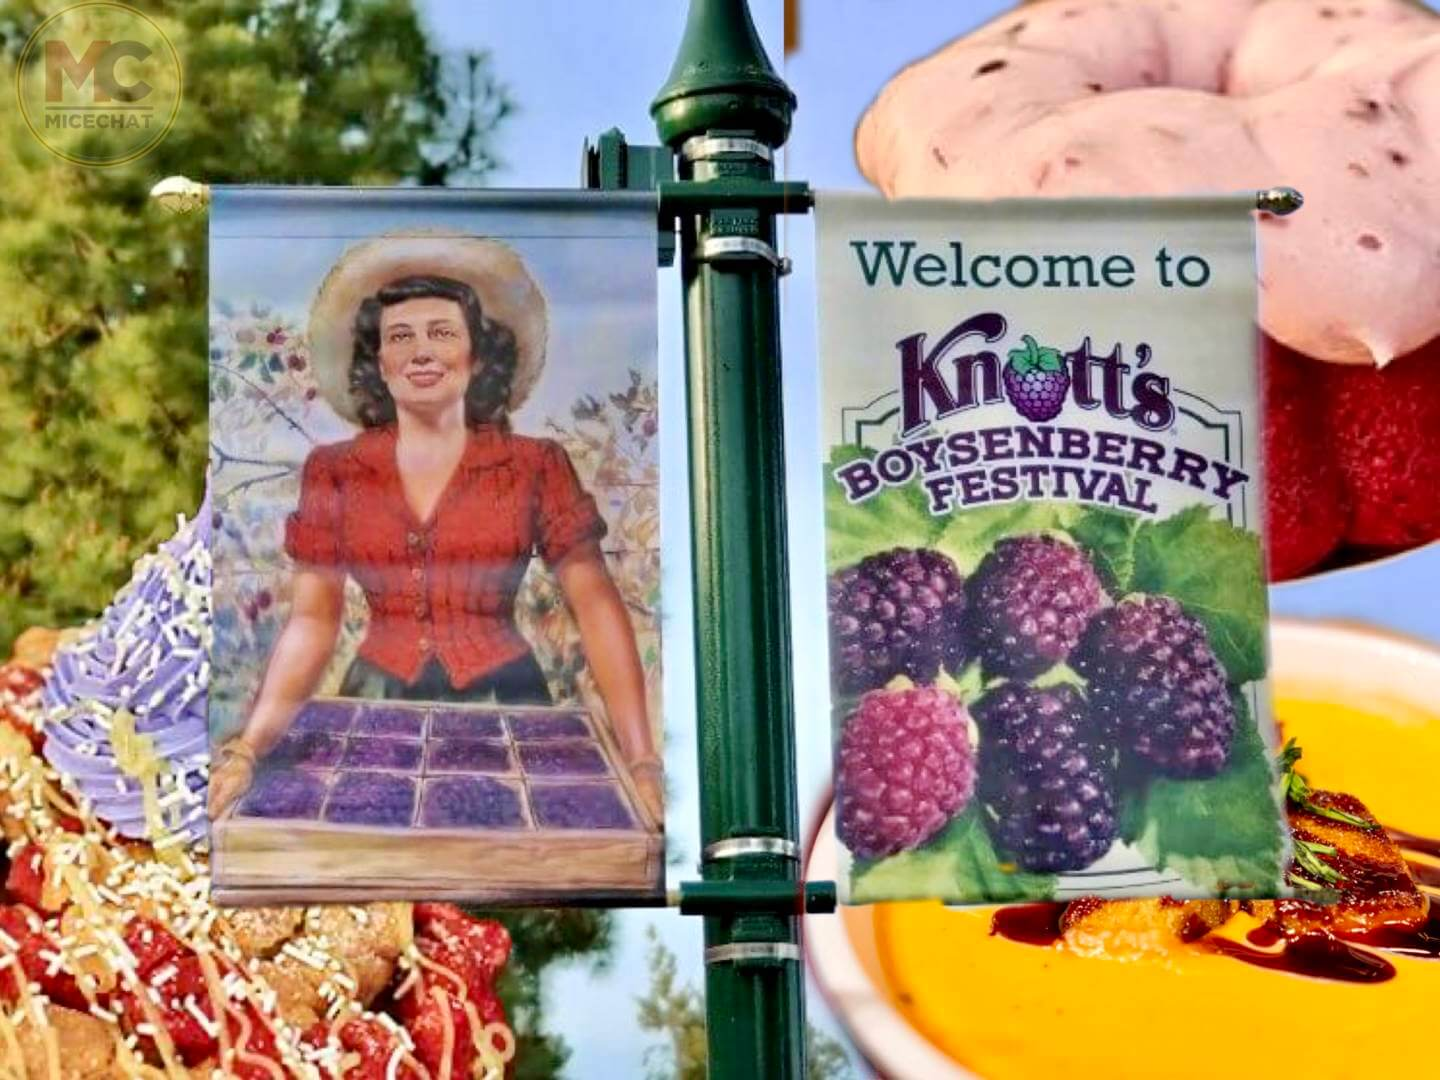 Time to Dig in with Knott's Taste of Boysenberry Festival's Full Menu